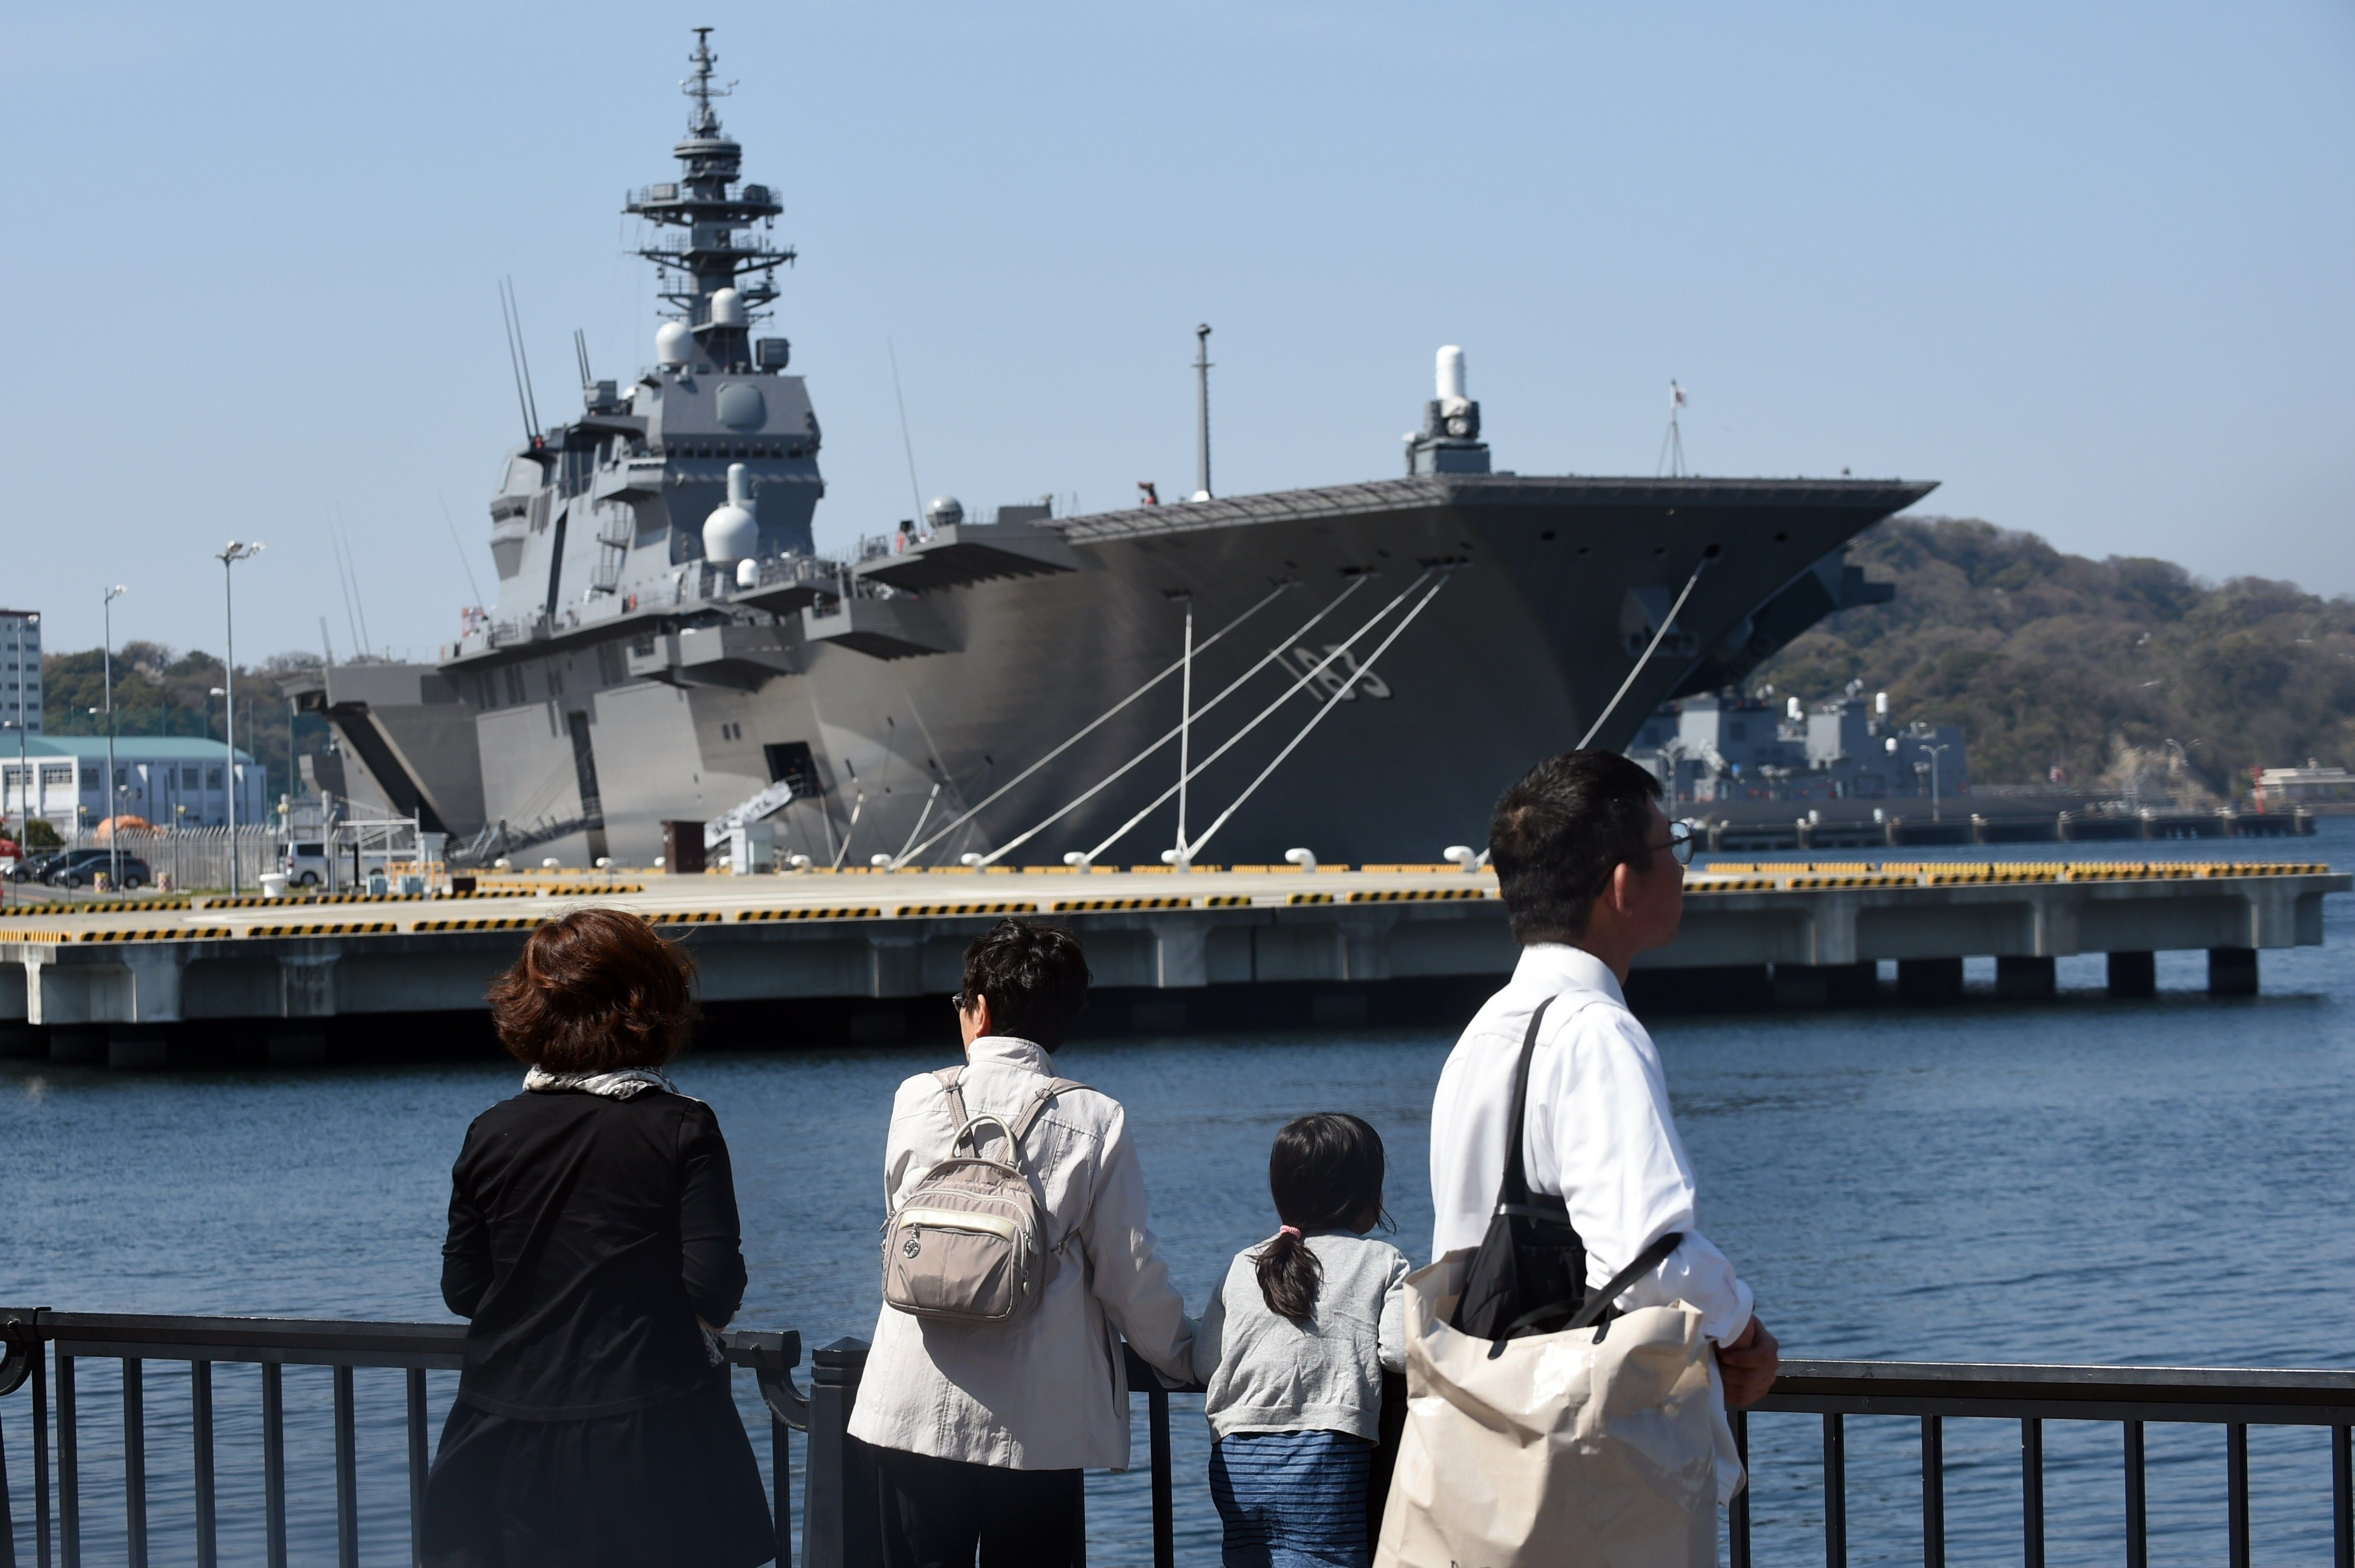 To Lure Recruits, Japan's Navy Is Turning To Free WiFi